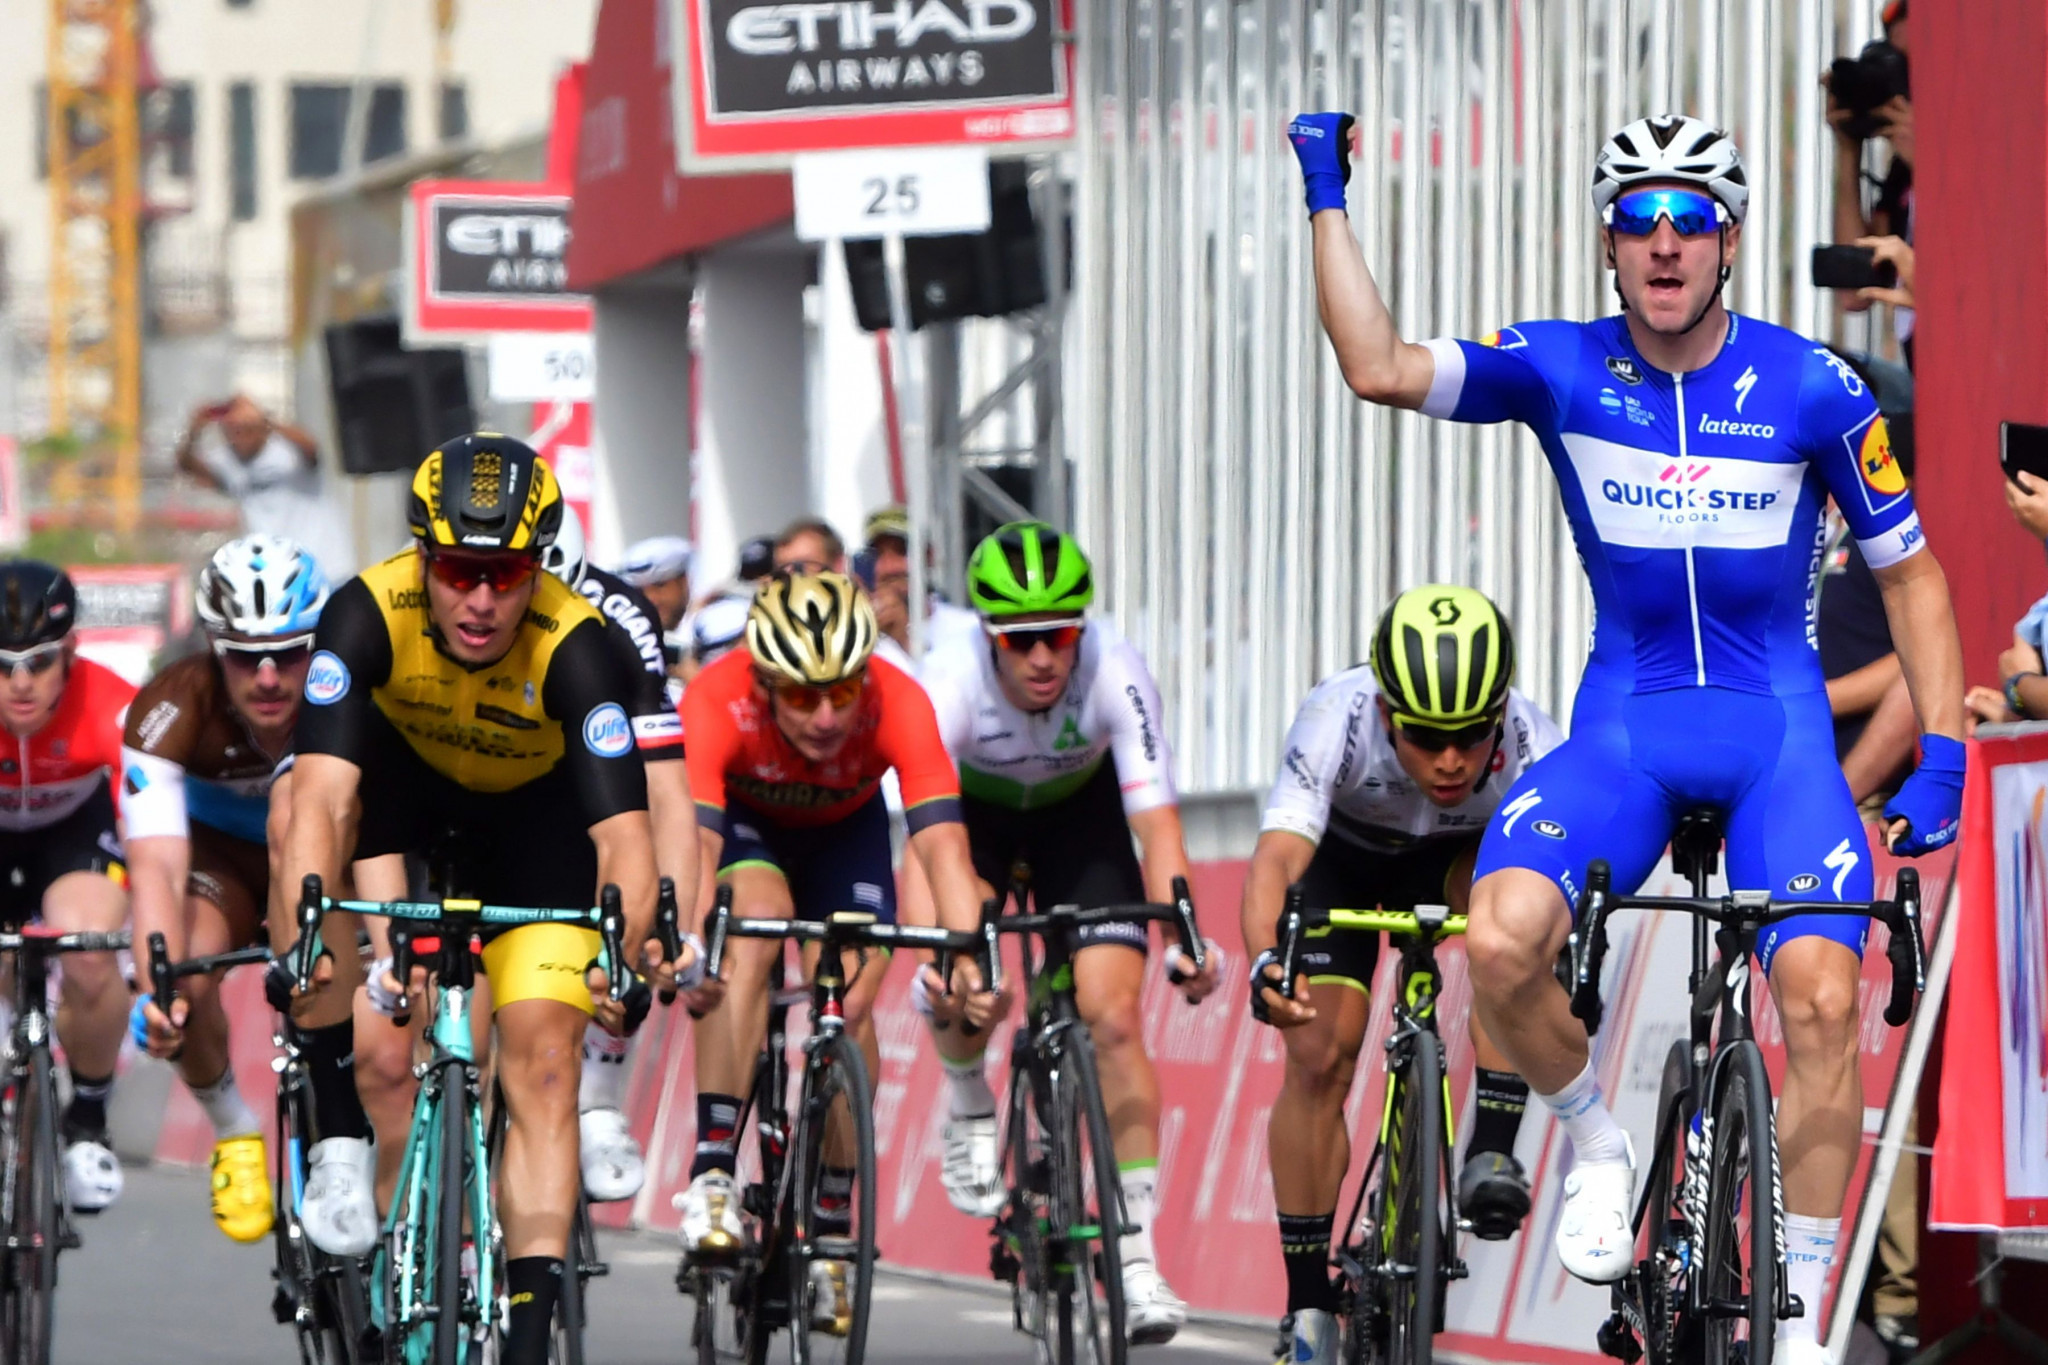 Viviani assumes race lead after winning second stage of Abu Dhabi Tour